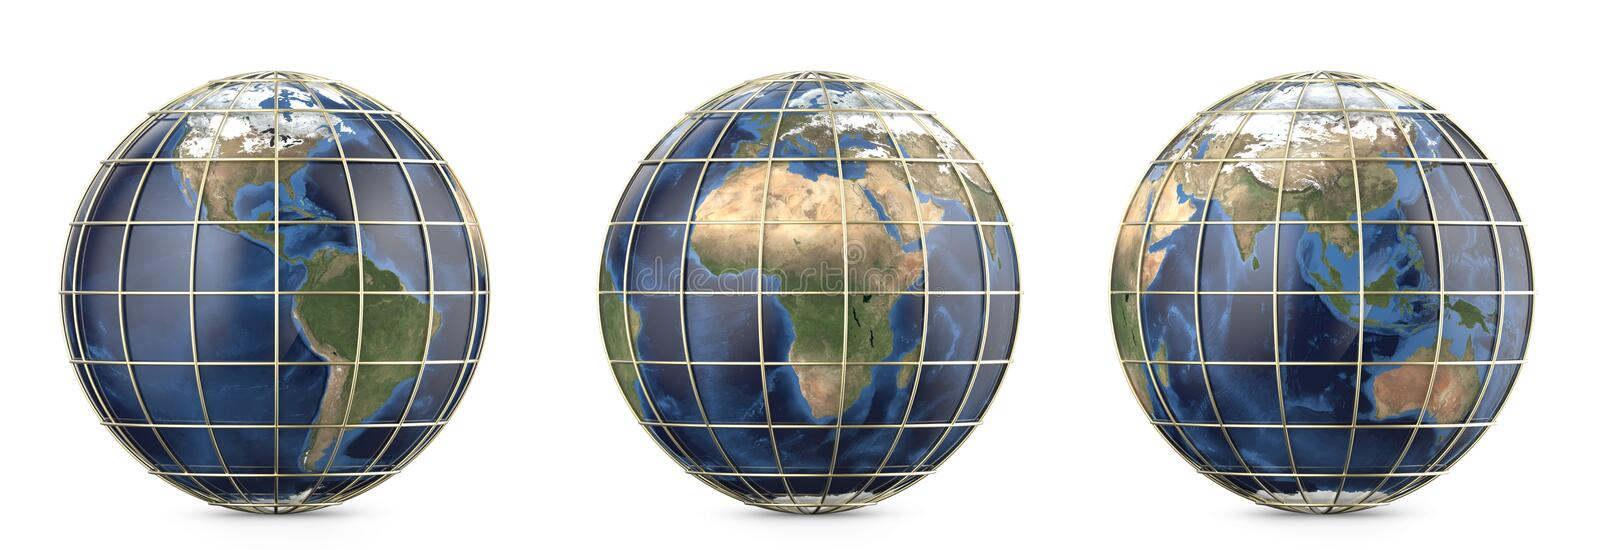 Planet earth with gold mesh. Showing America, Europe, Africa, Asia, Australia continent royalty free stock photos